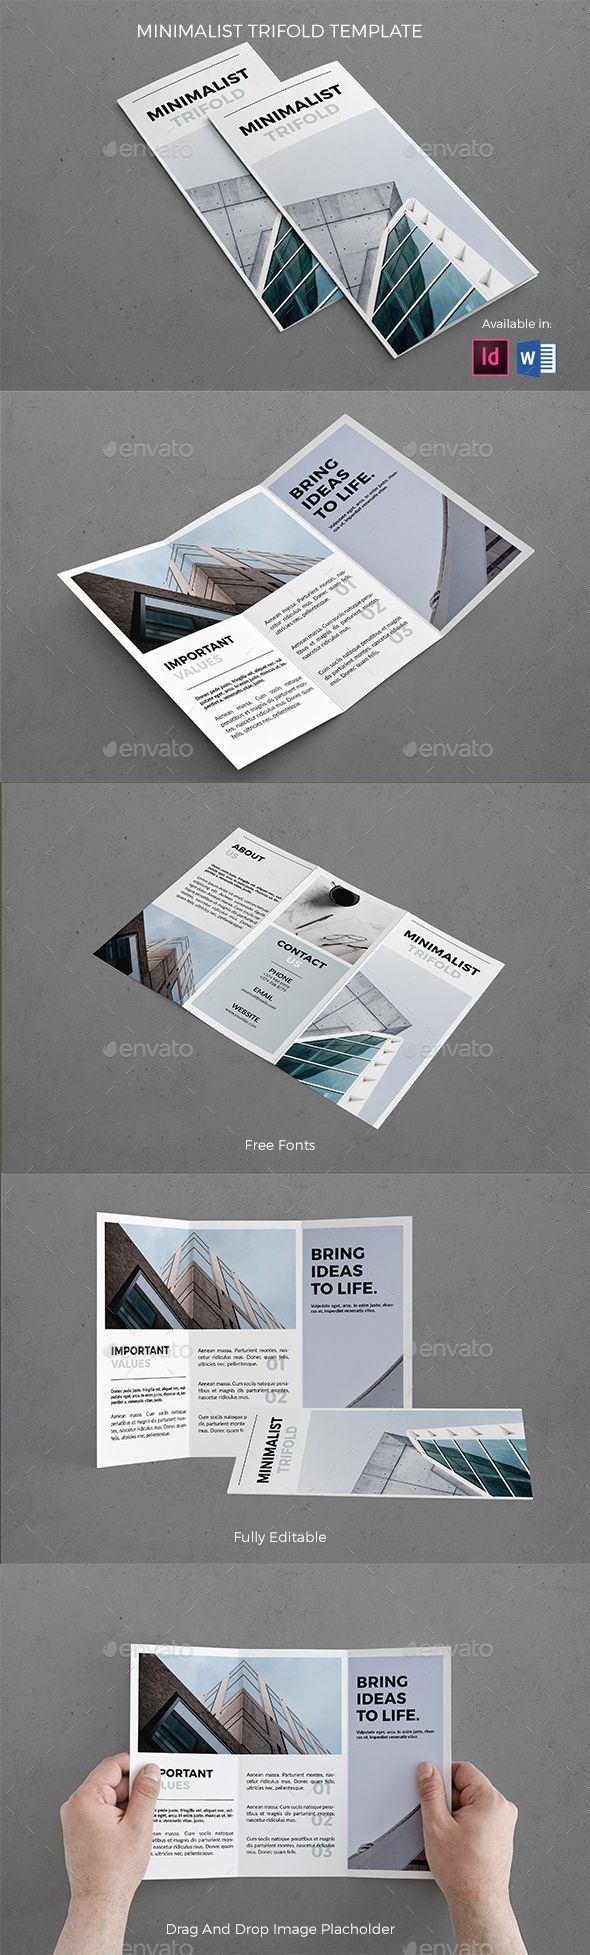 Minimalist Trifold Template — InDesign INDD #atsar #corporate • Download ➝ https://graphicriver.net/item/minimalist-trifold-template/19537979?ref=pxcr